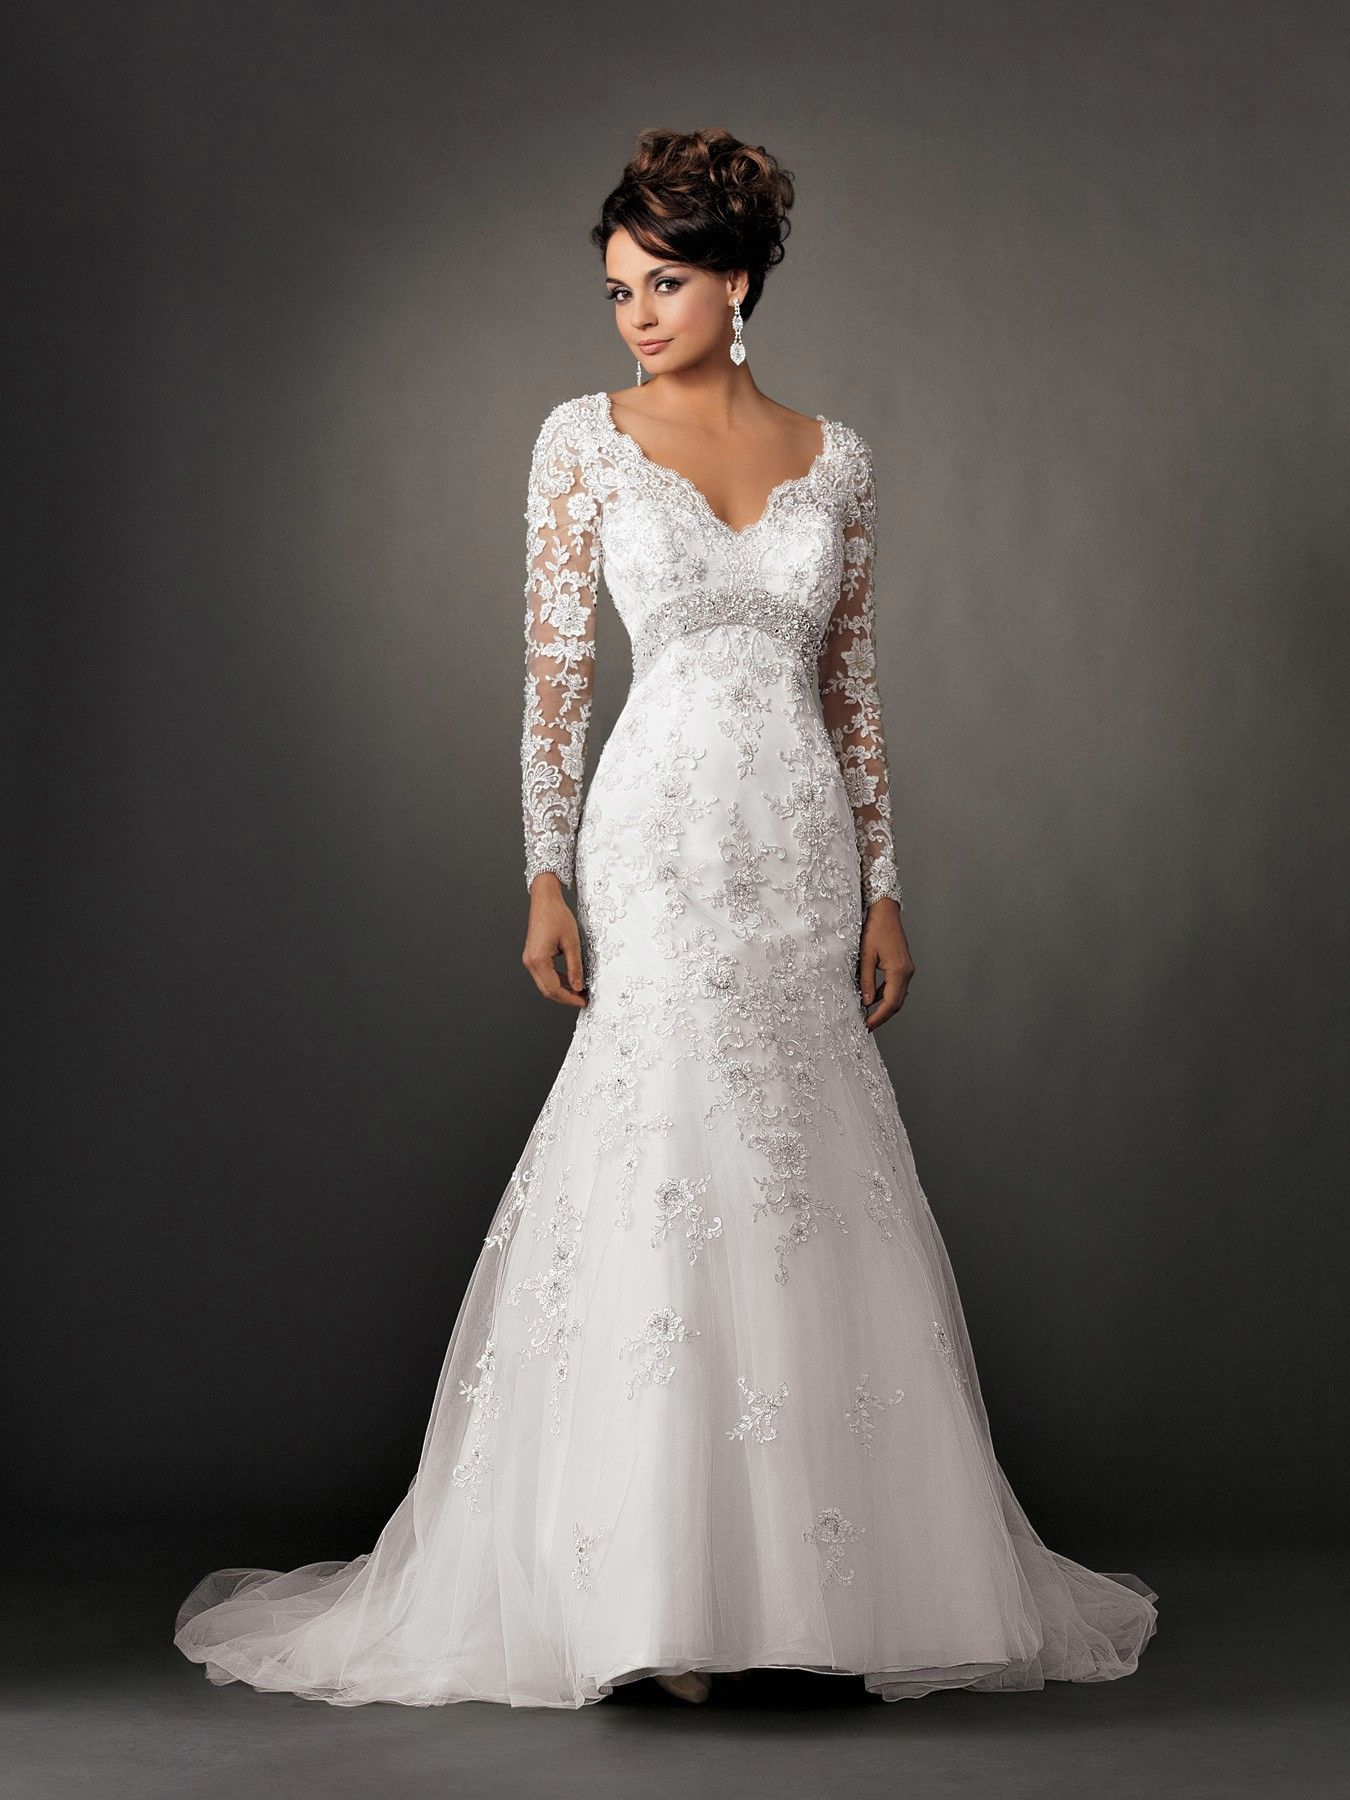 Jordan reflections wedding dresses style m m